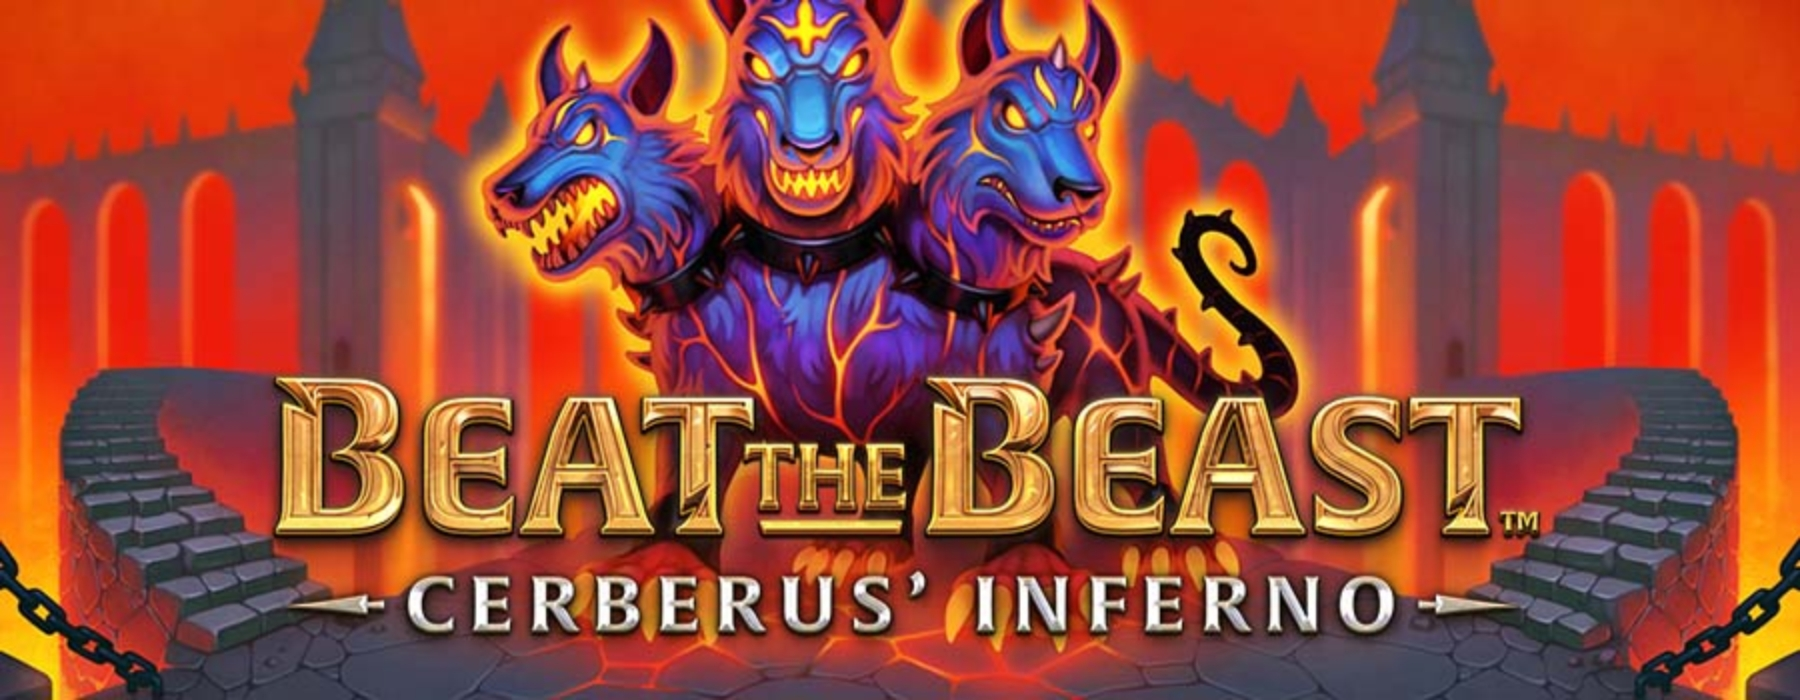 Beat the Beast Cerberus Inferno Online Slot Demo Game by Thunderkick